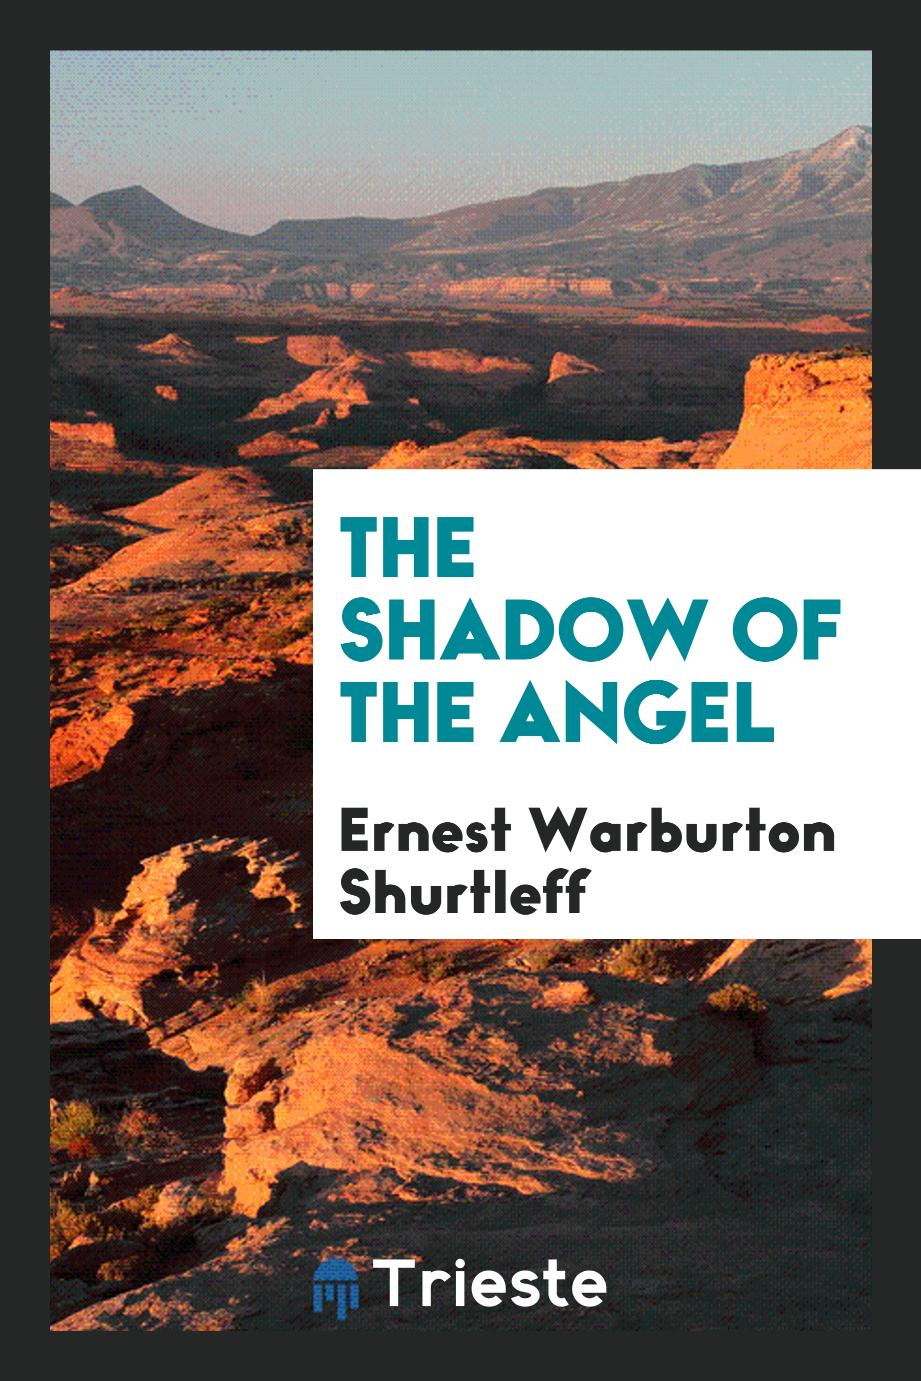 The shadow of the angel